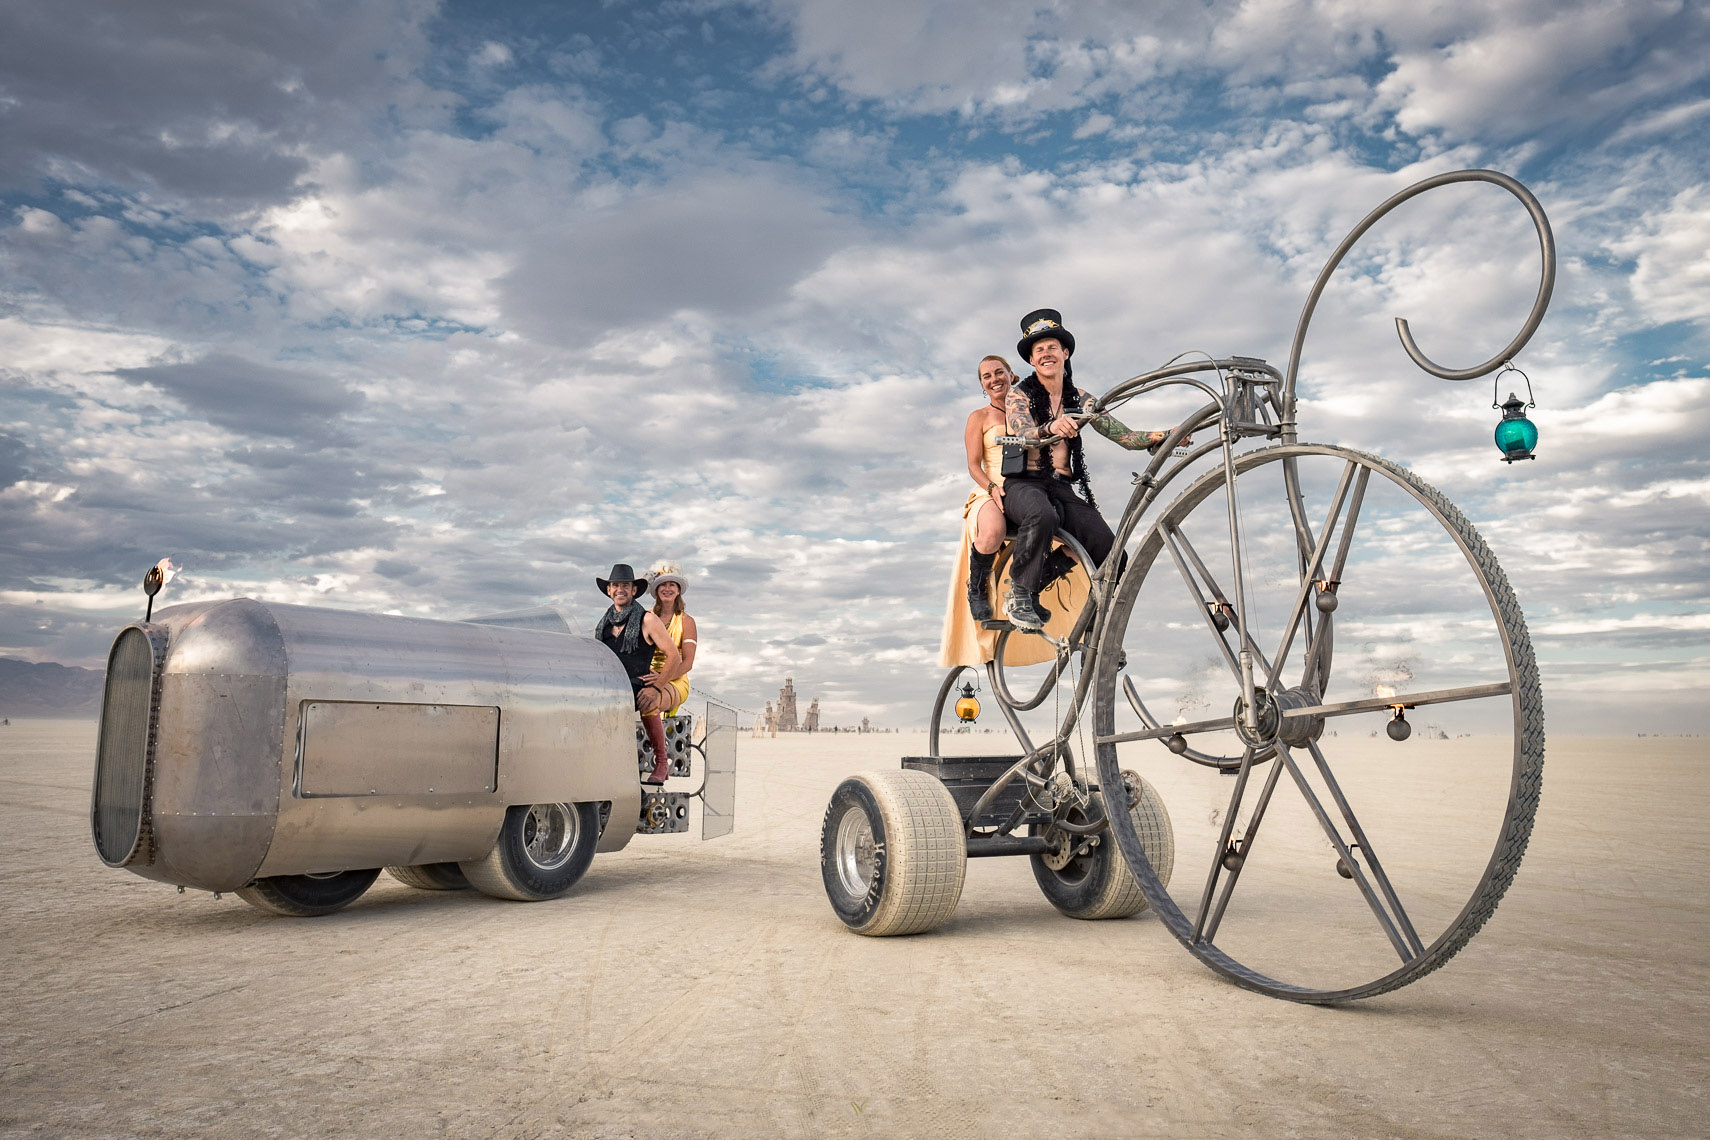 01_BurningMan2016_SpeederDreamCycle-3392_APF